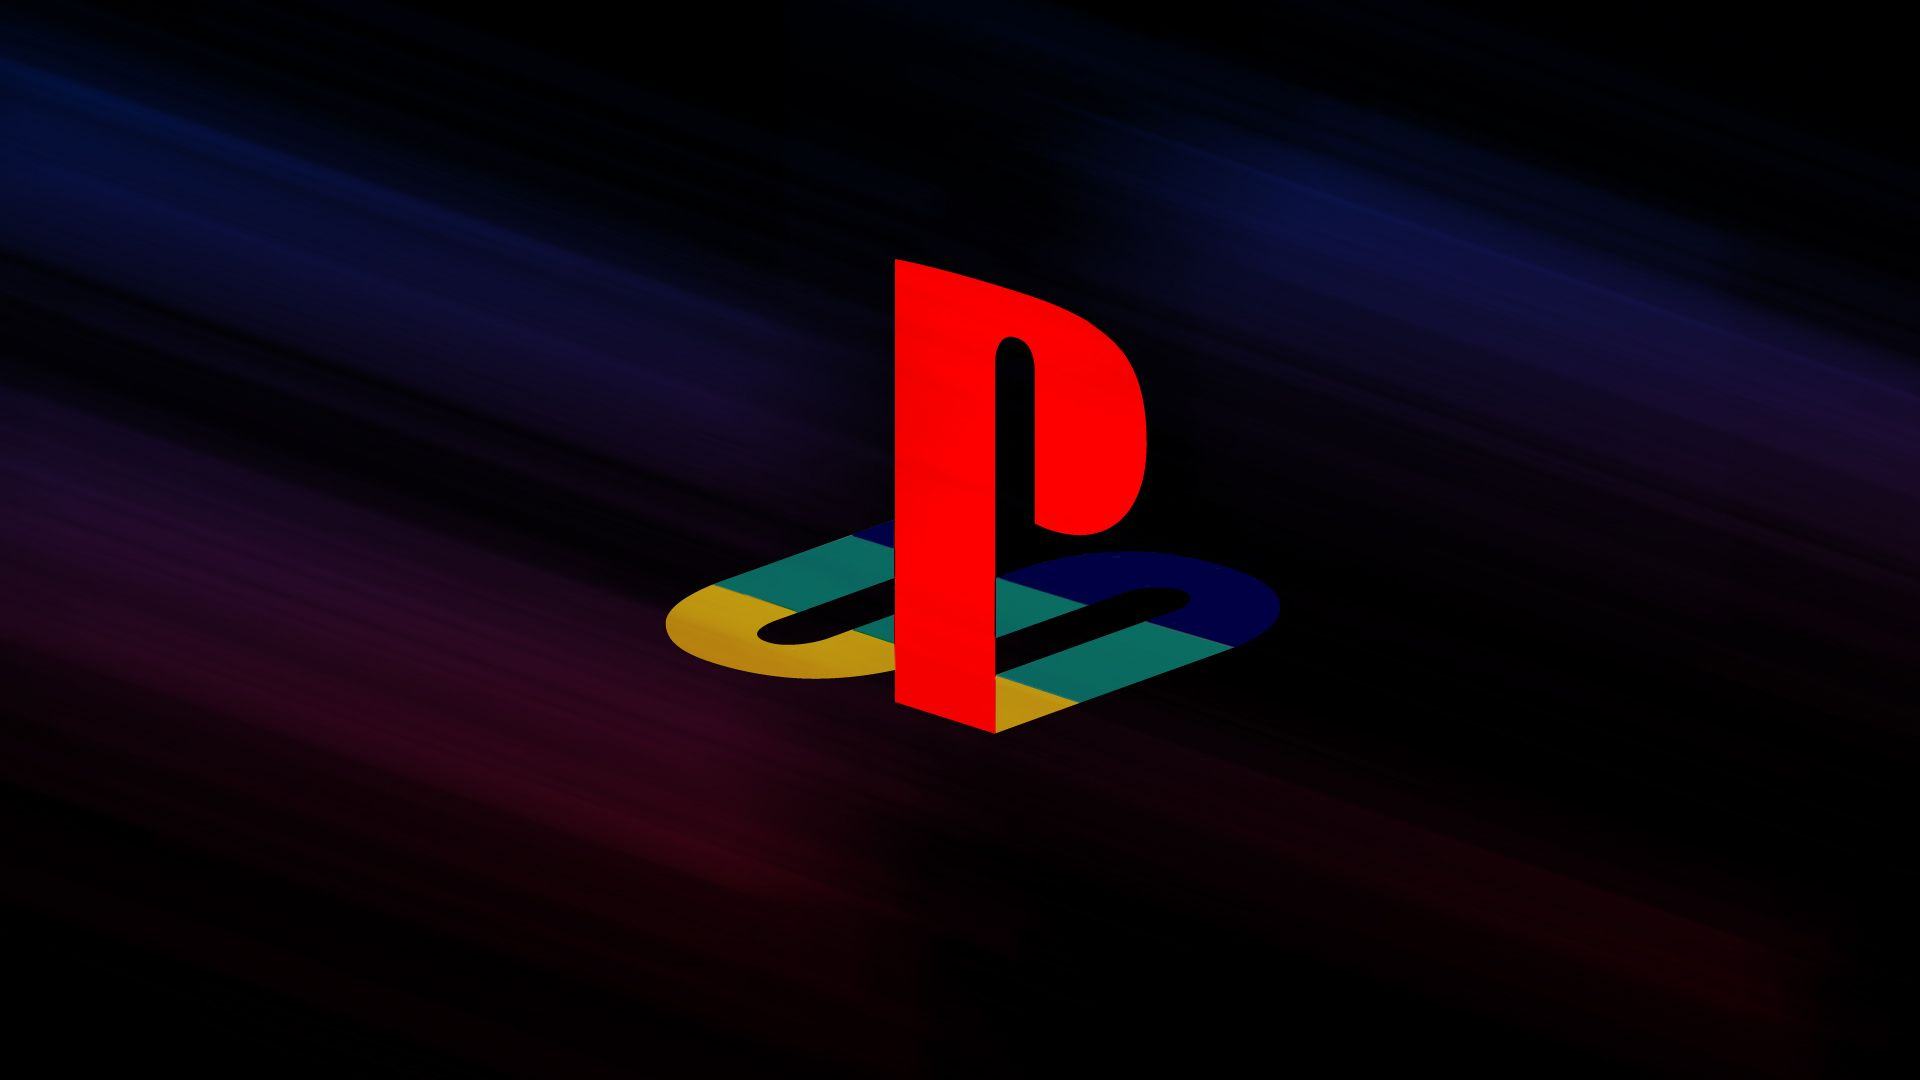 PlayStation 1 Wallpapers   Top PlayStation 1 Backgrounds 1920x1080